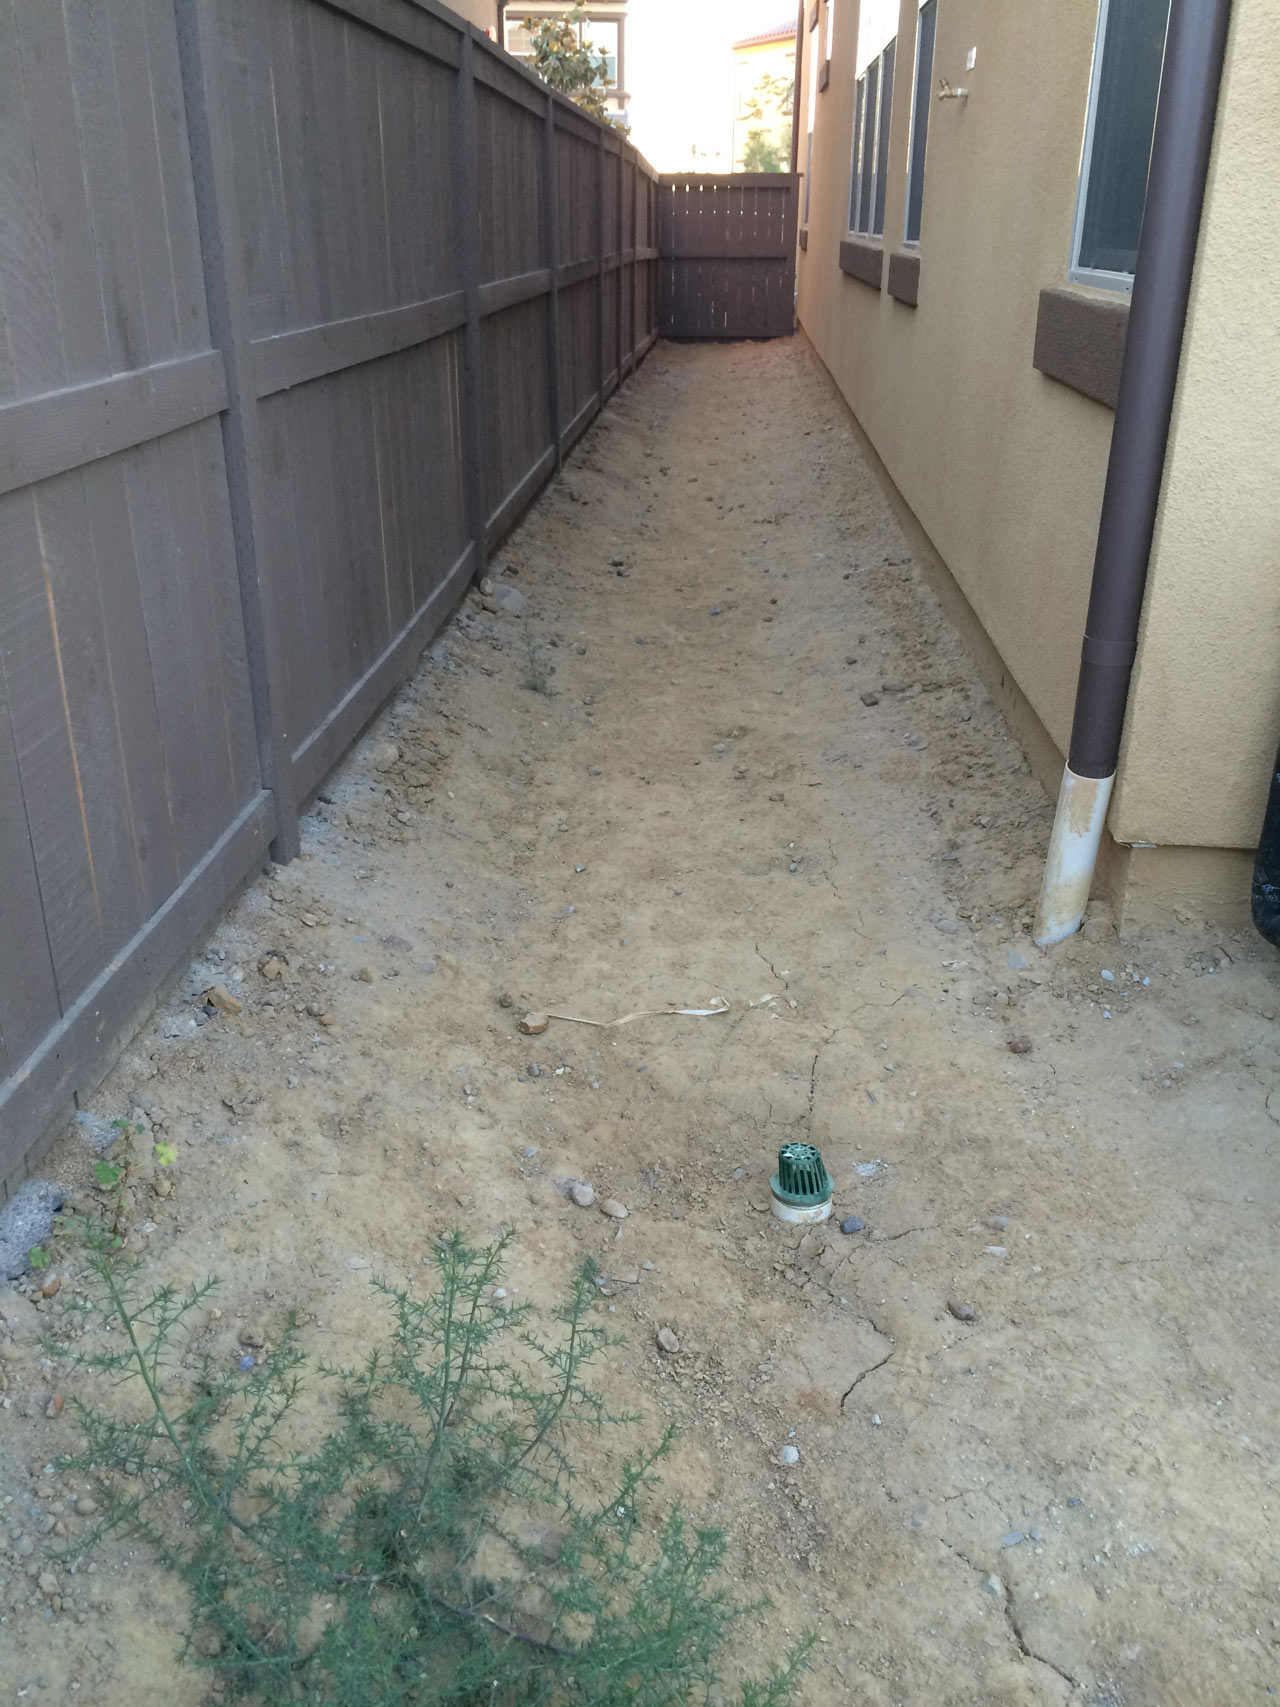 Backyard side yard wasted space (before)